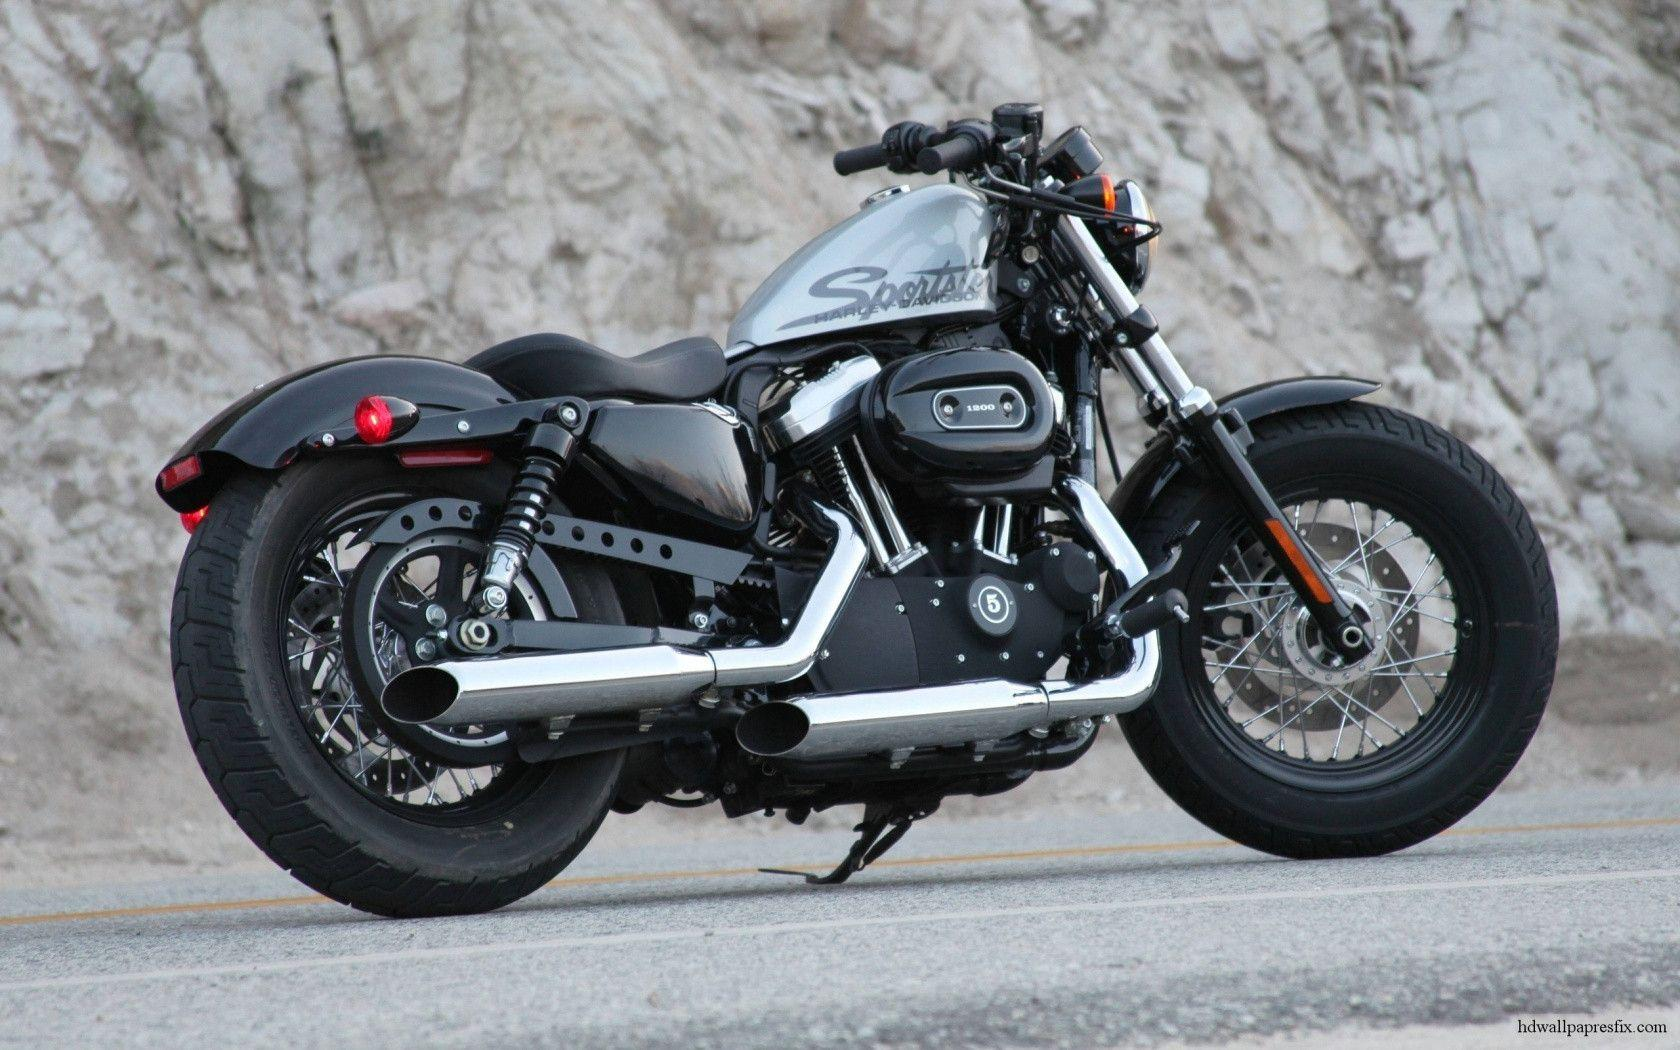 Harley Davidson Sportster Wallpapers In HD, HQ Backgrounds | HD .